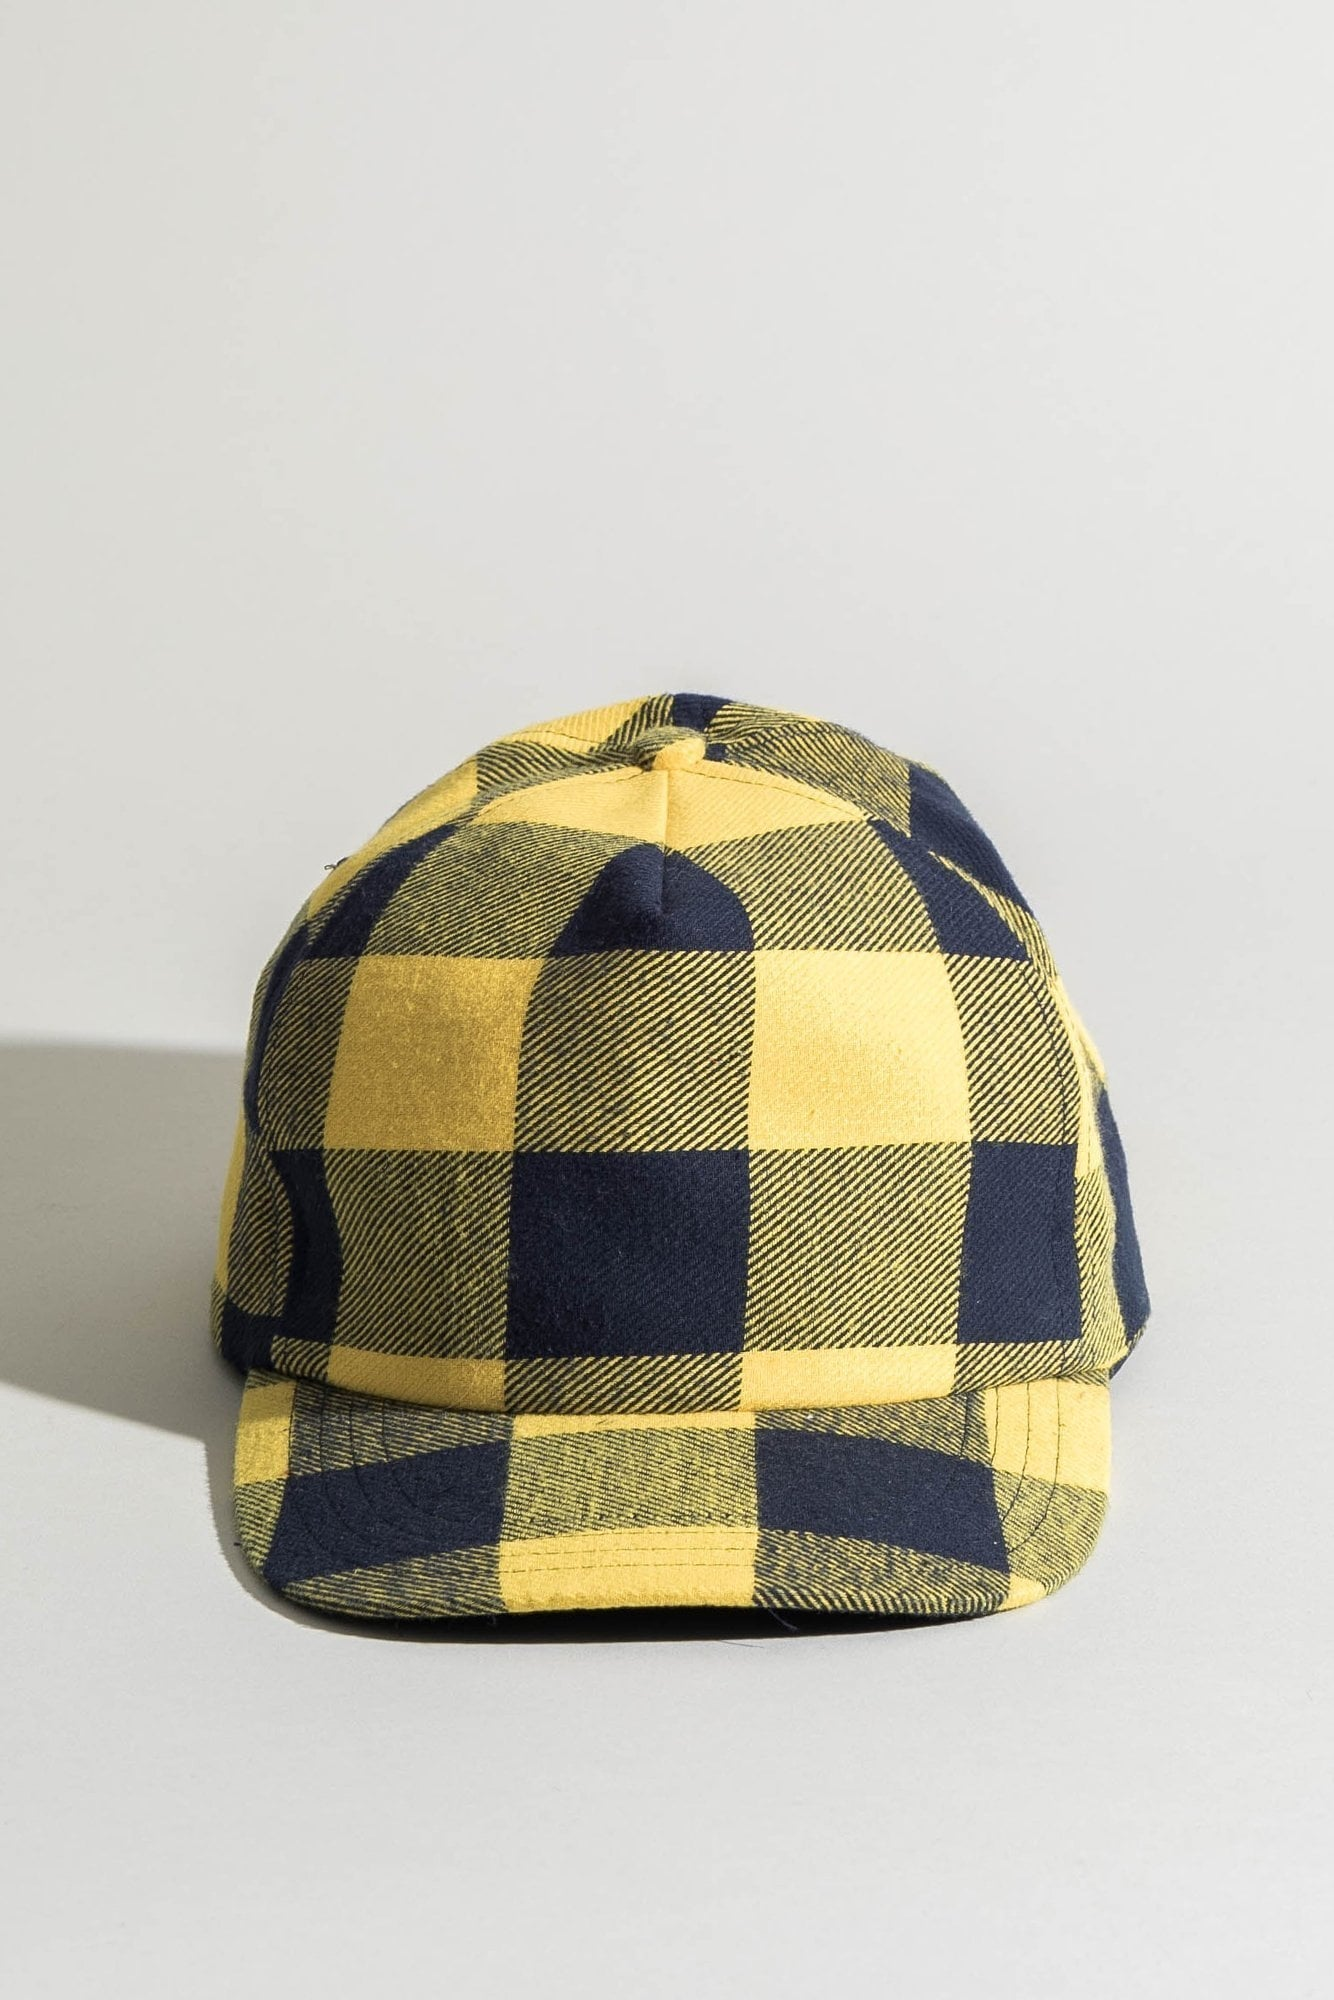 R13 Flat Brim Baseball Cap - Yellow/ Navy Buffalo